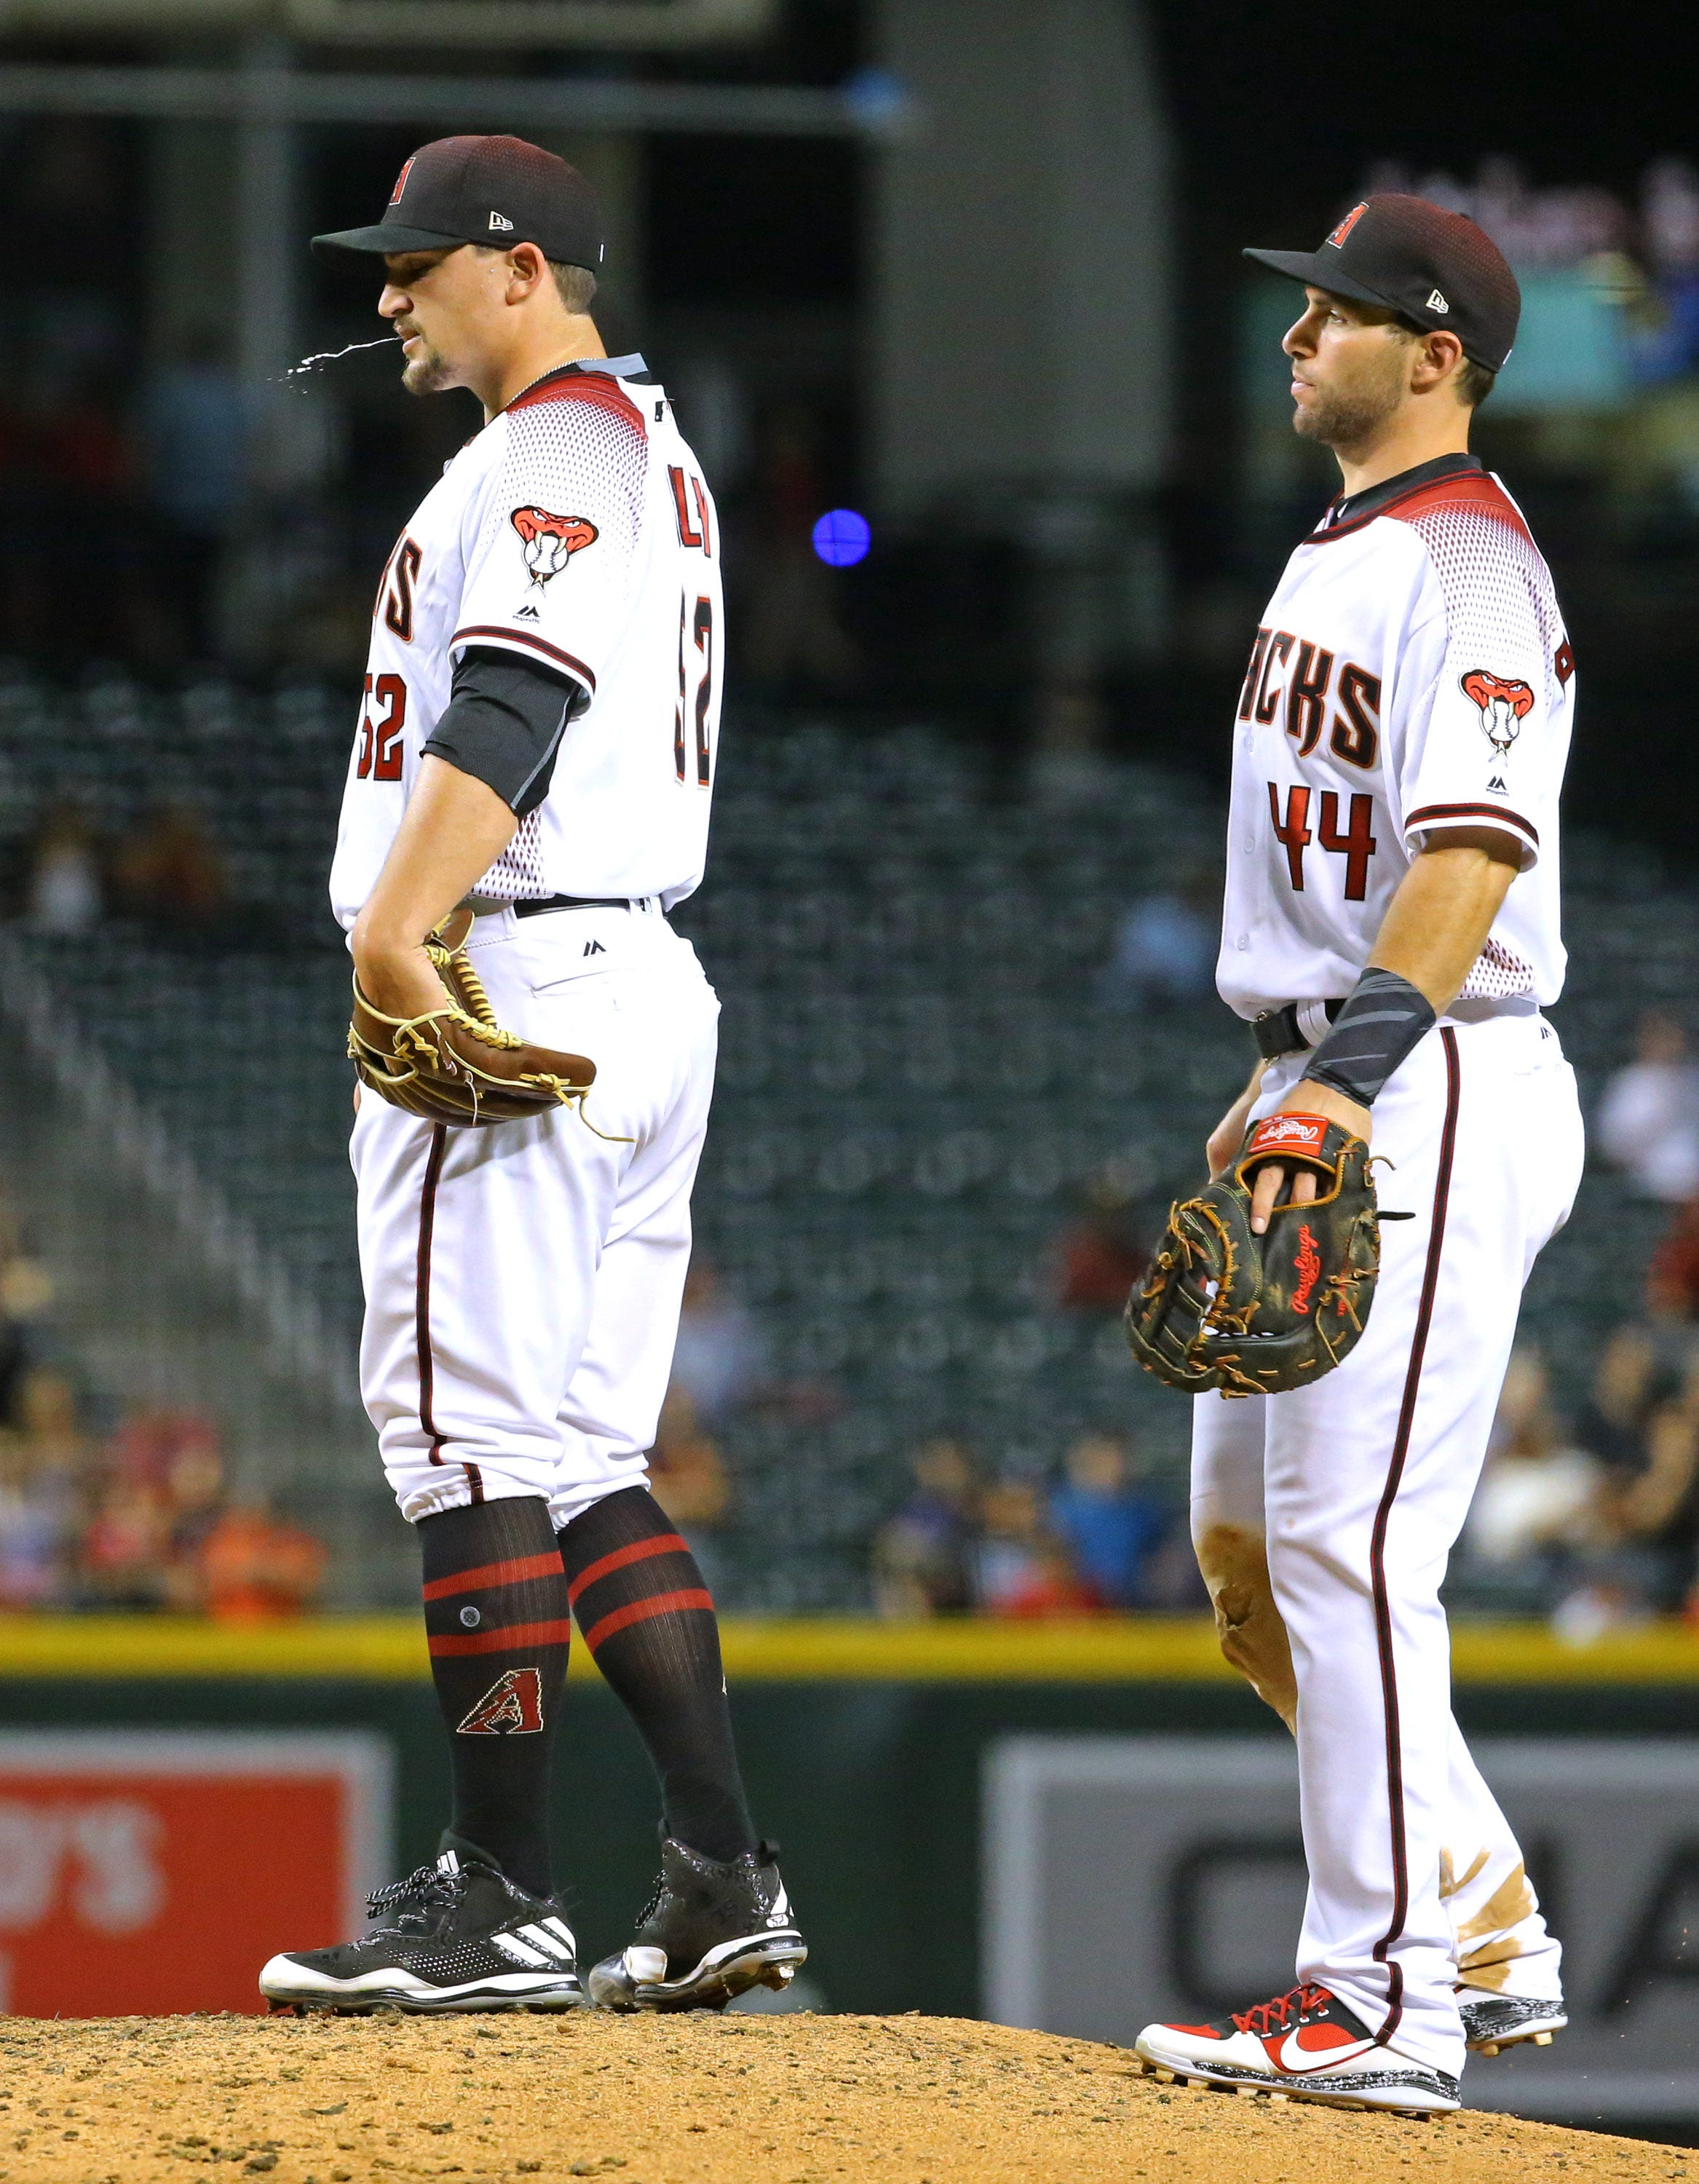 Diamondbacks' attendance lagging behind team's success (and that's pretty normal)